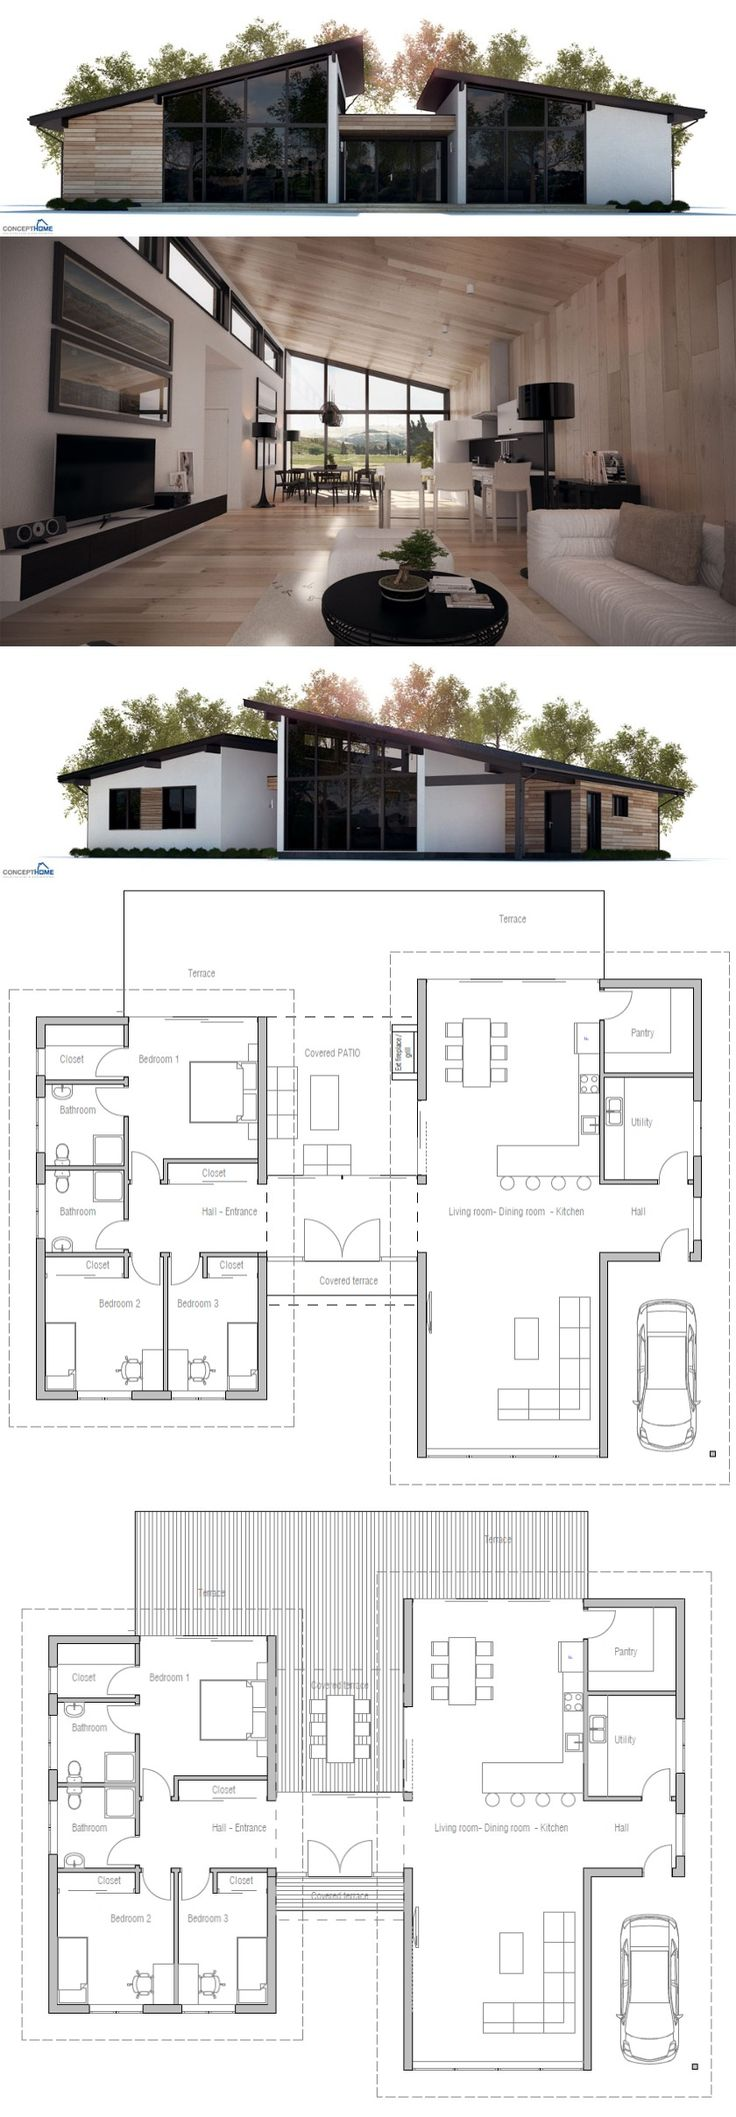 1000+ ideas about Bungalow Bauen on Pinterest Haustypen ... size: 736 x 2117 post ID: 8 File size: 0 B